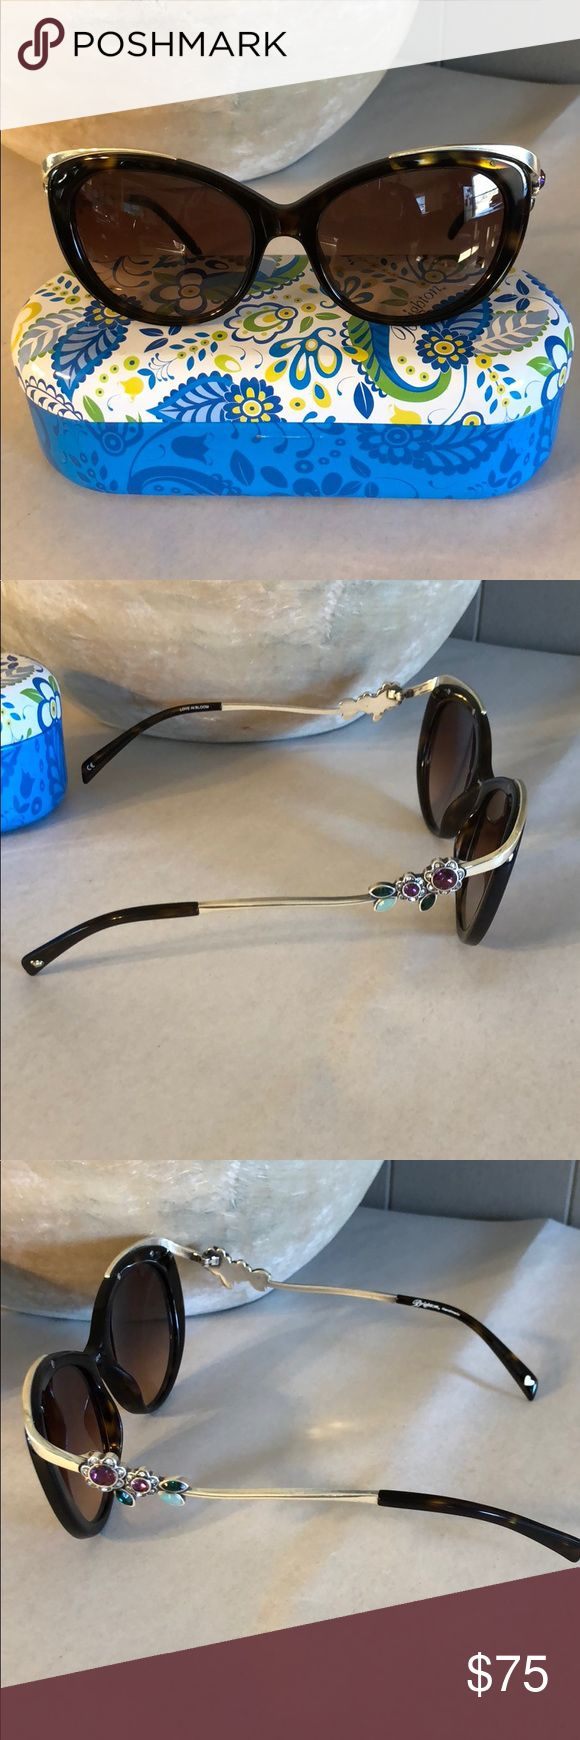 Brighton Love in Bloom Tortoise Cat Eye Sunnies Brighton Love in Bloom Tortoise Cat Eye Sunnies EUC. Only worn a couple of times. Comes with tin case. Brighton Accessories Sunglasses